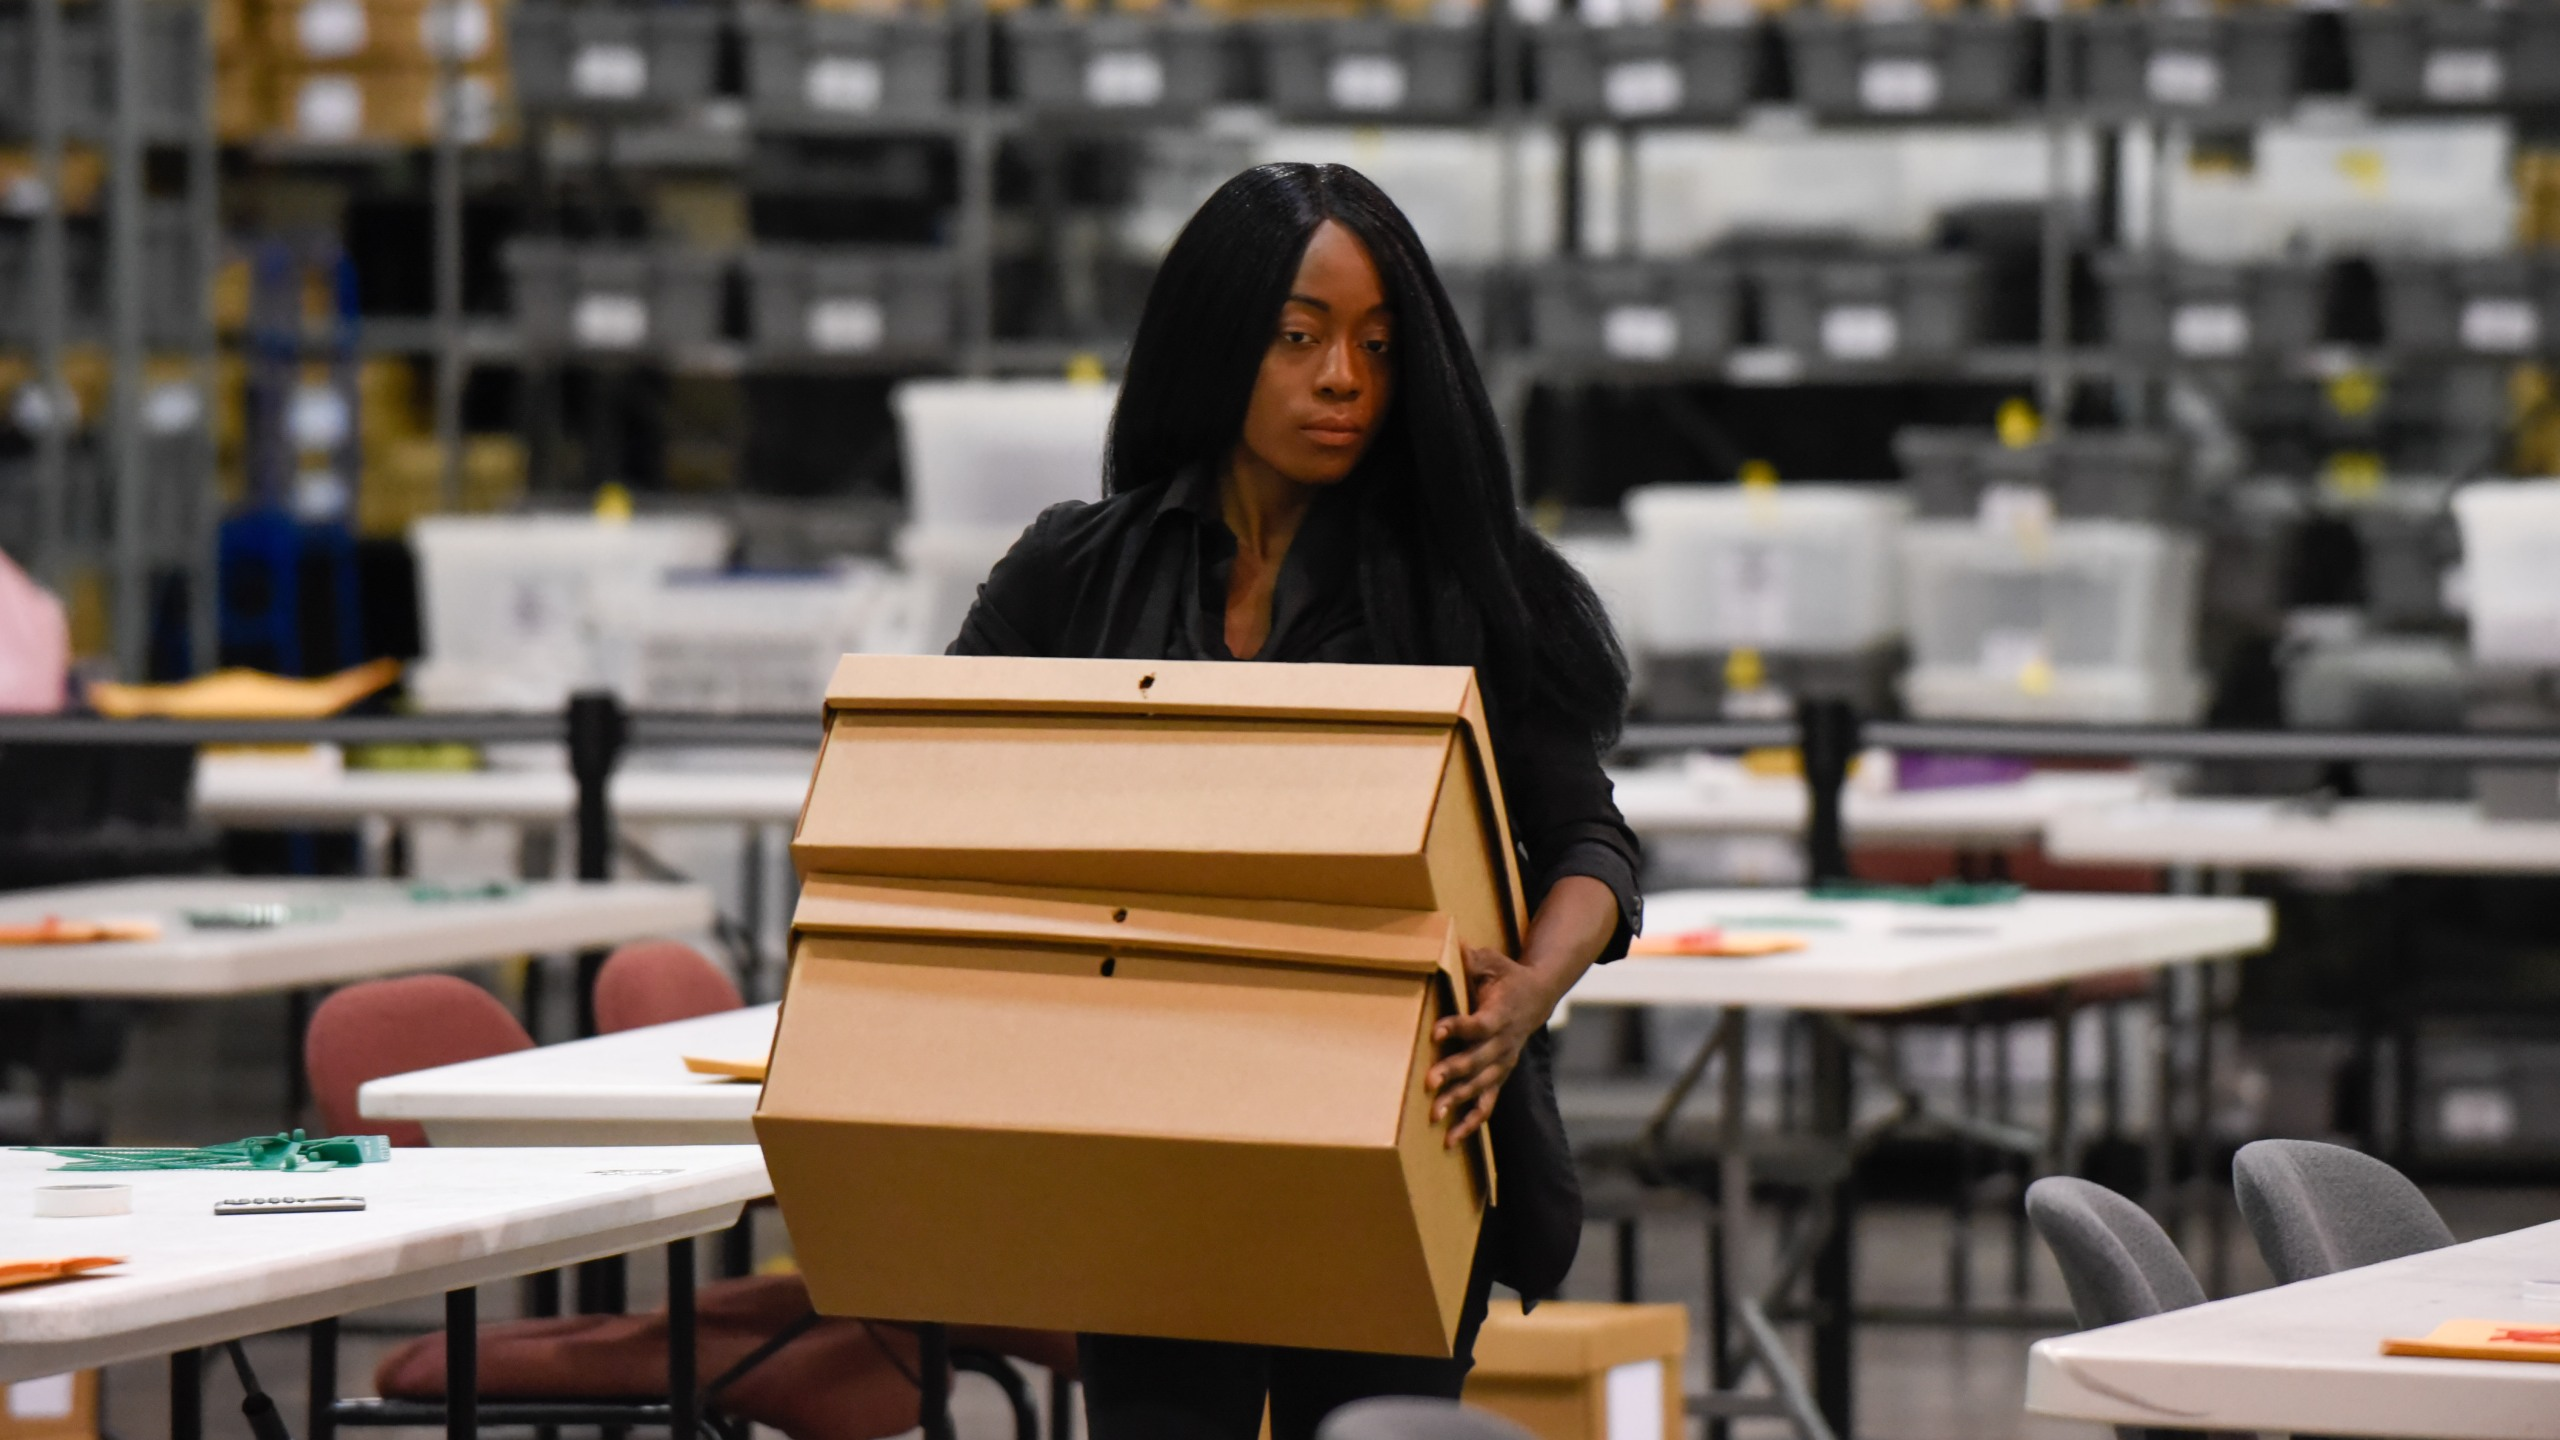 A woman sets up tables for hand counting ballots on November 15, 2018, as Palm Beach County did not meet the midterm recount deadline in West Palm Beach, Florida. (Credit: MICHELE EVE SANDBERG/AFP/Getty Images)